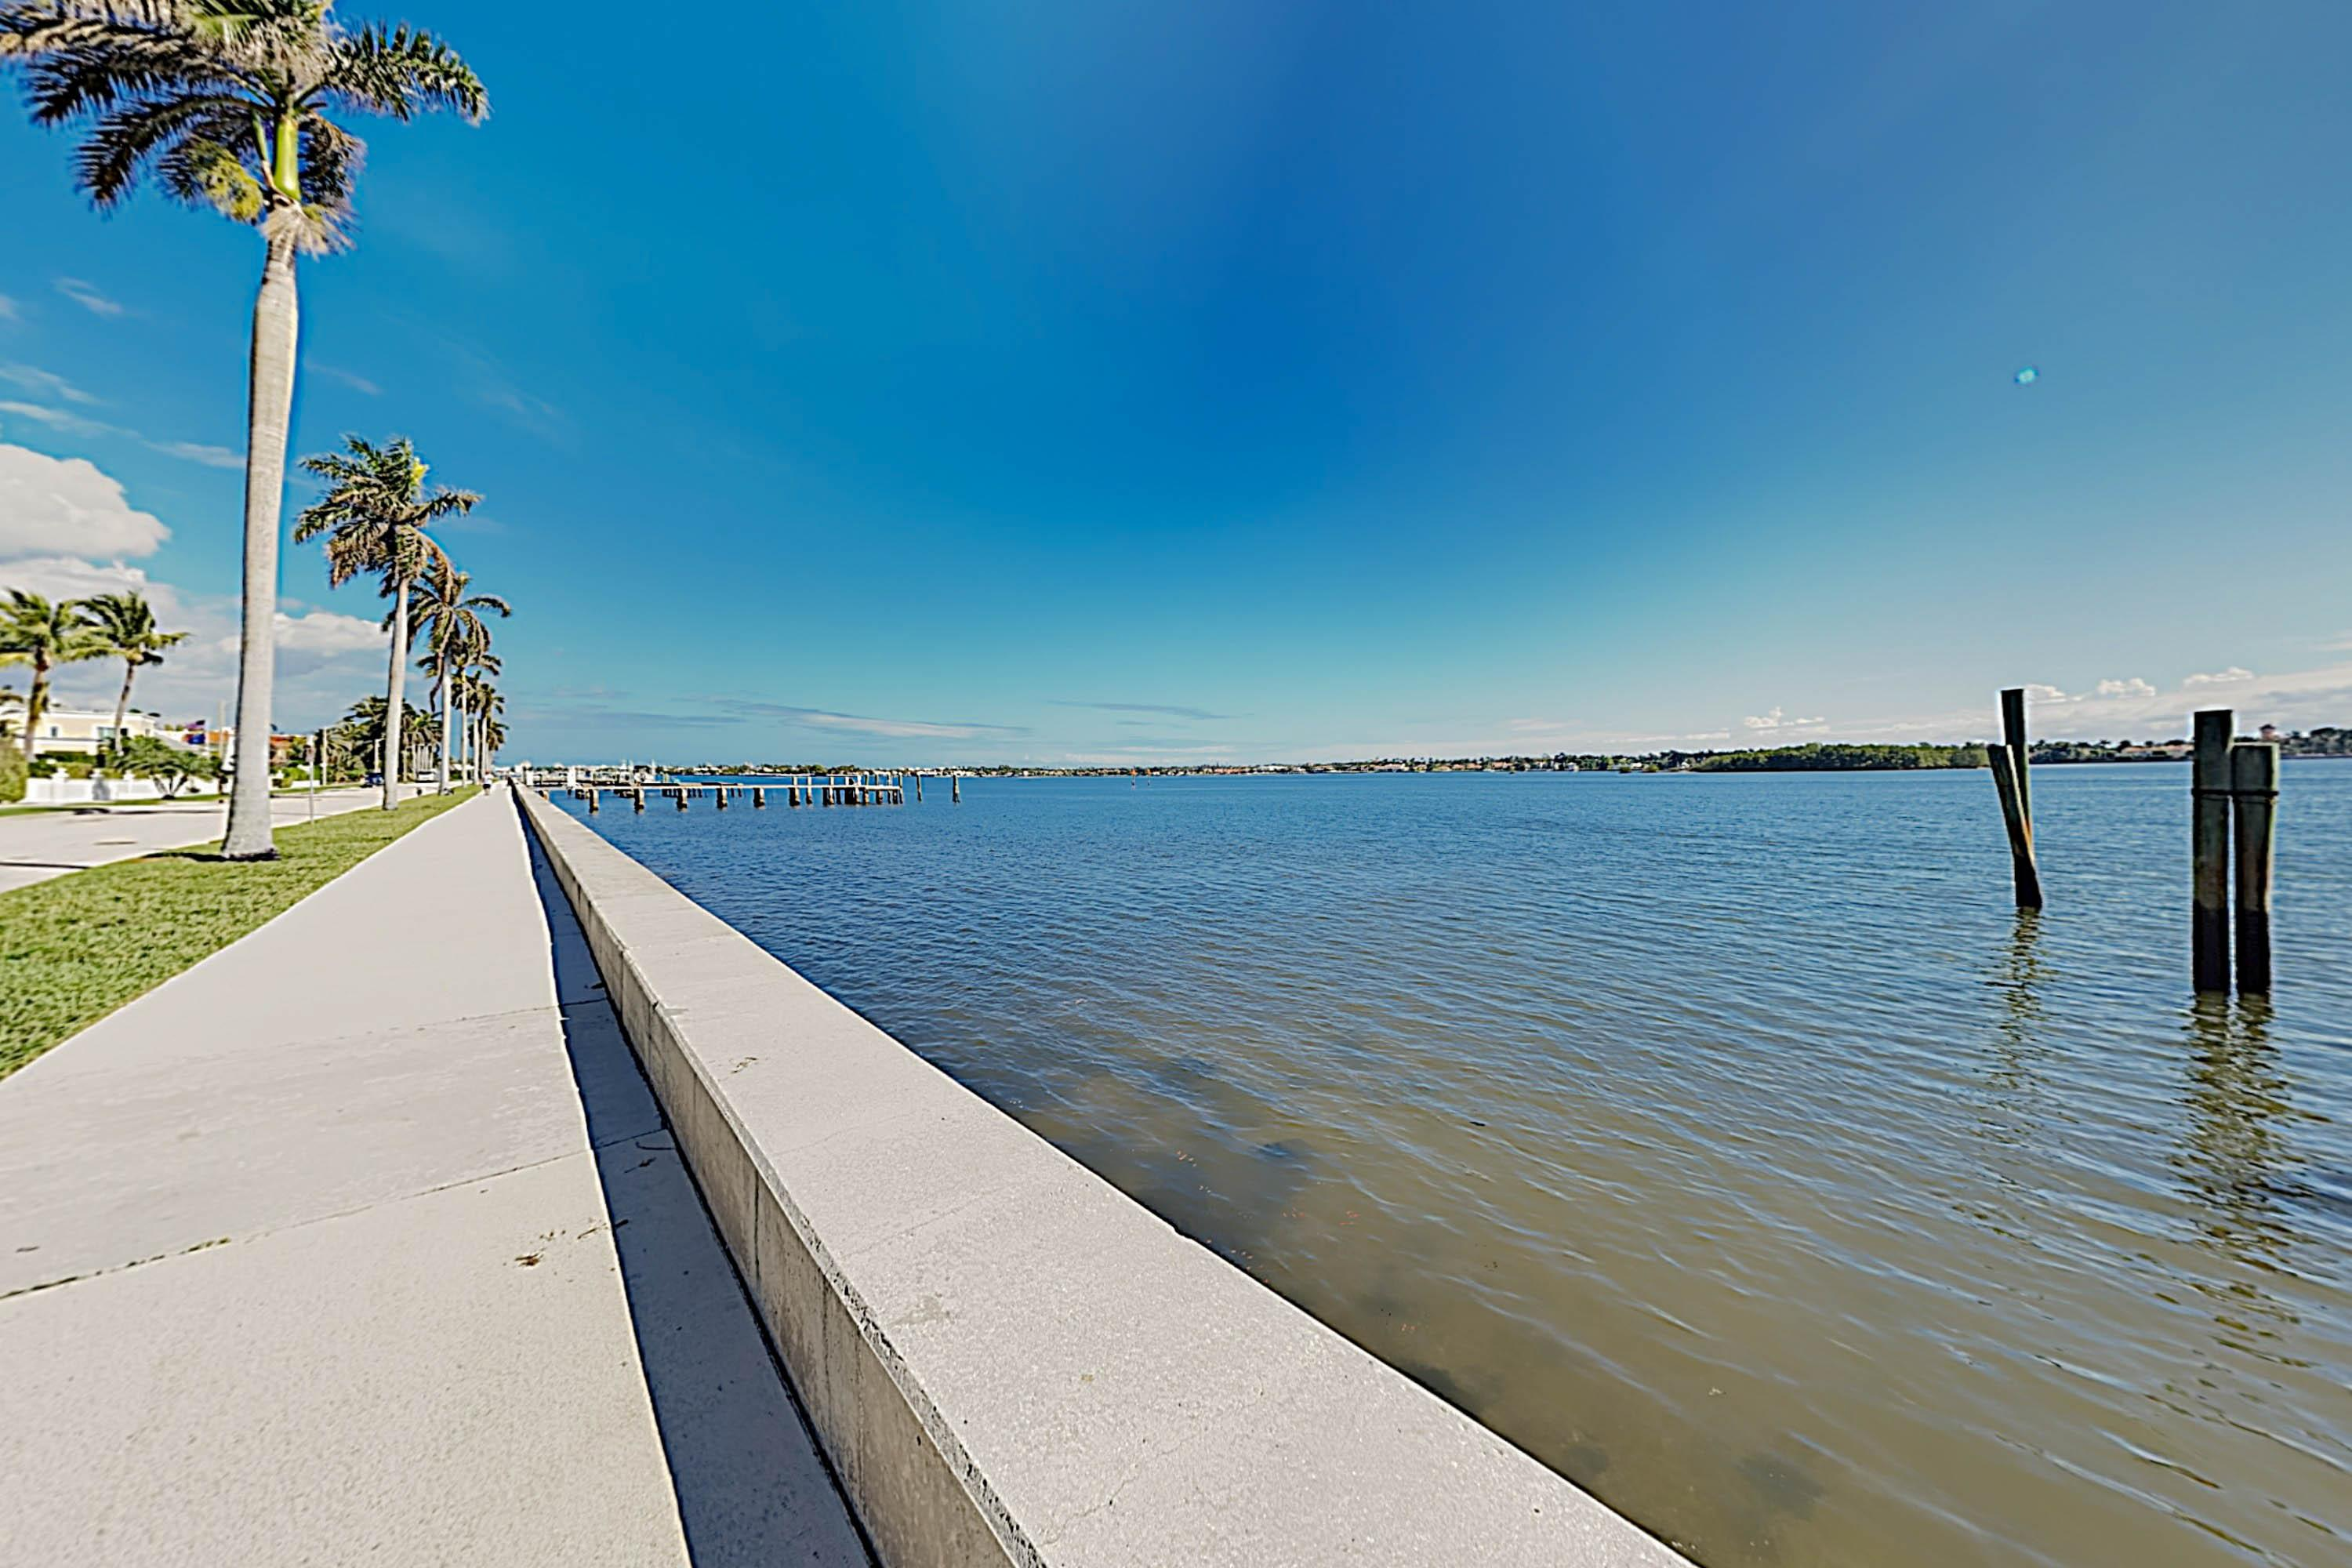 Stroll along the waterway just 1 block from your door.